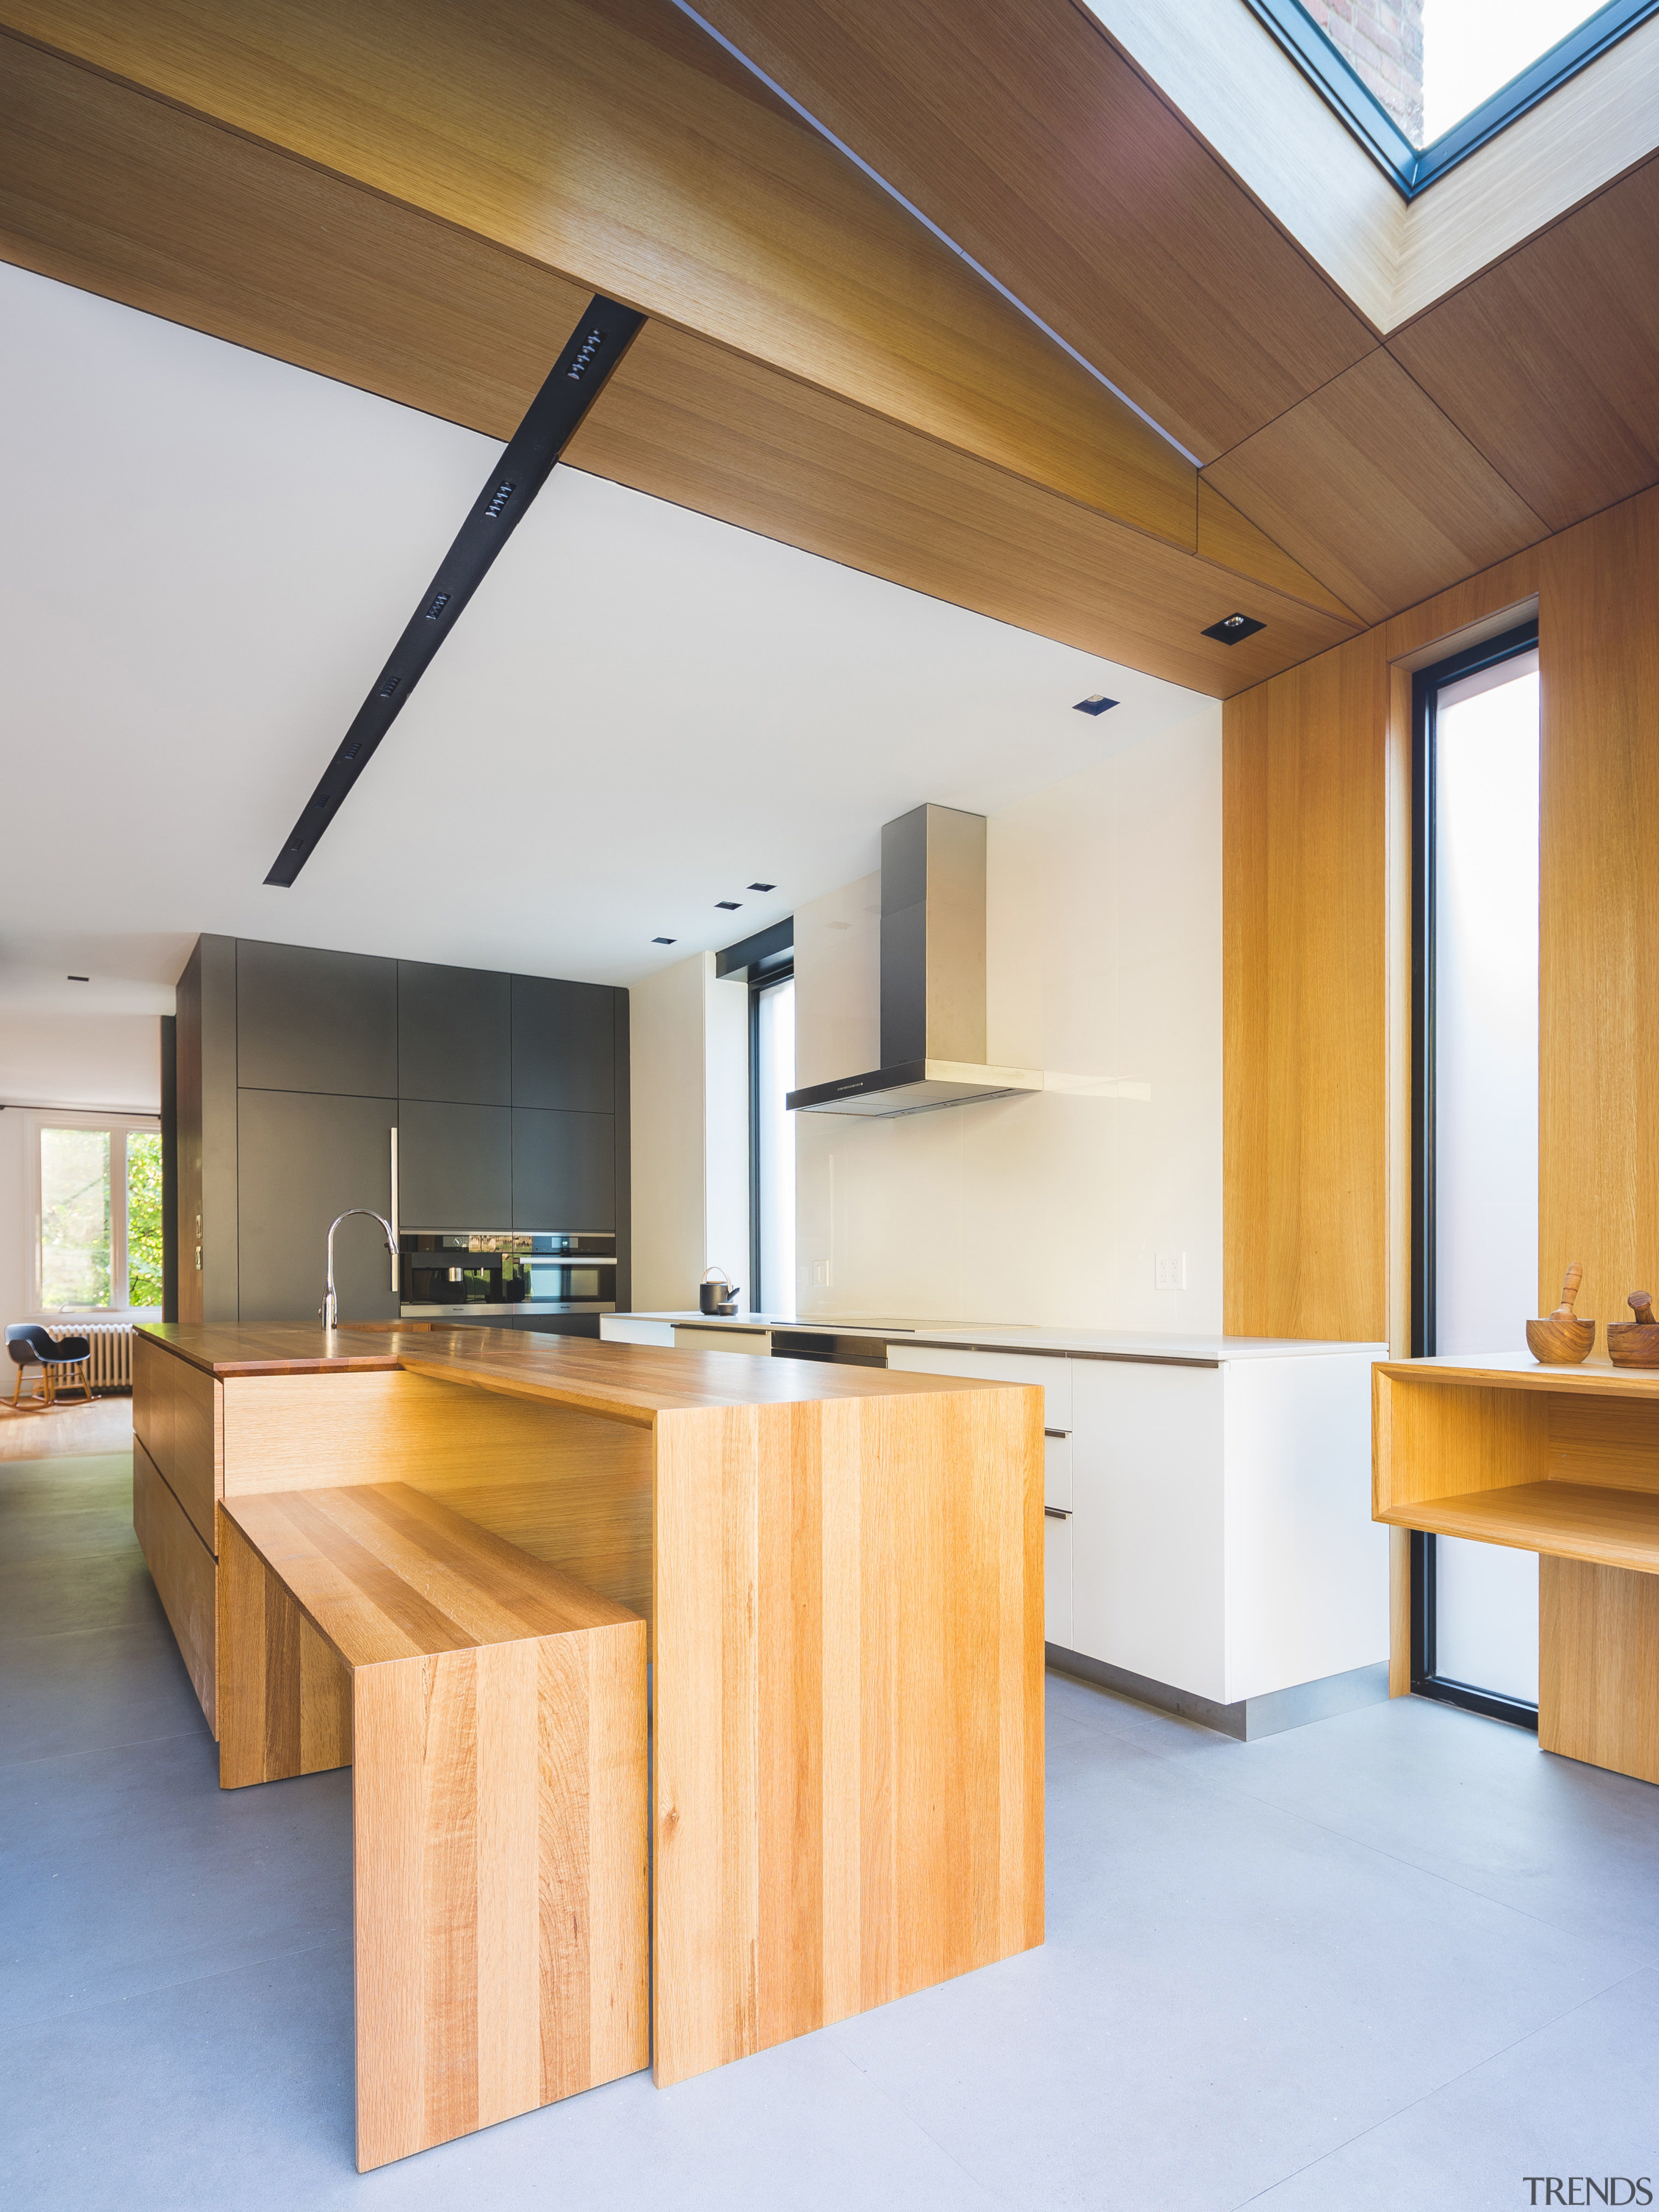 The solid oak island in this kitchen steps architecture, ceiling, floor, furniture, house, interior design, kitchen, product design, table, wood, white